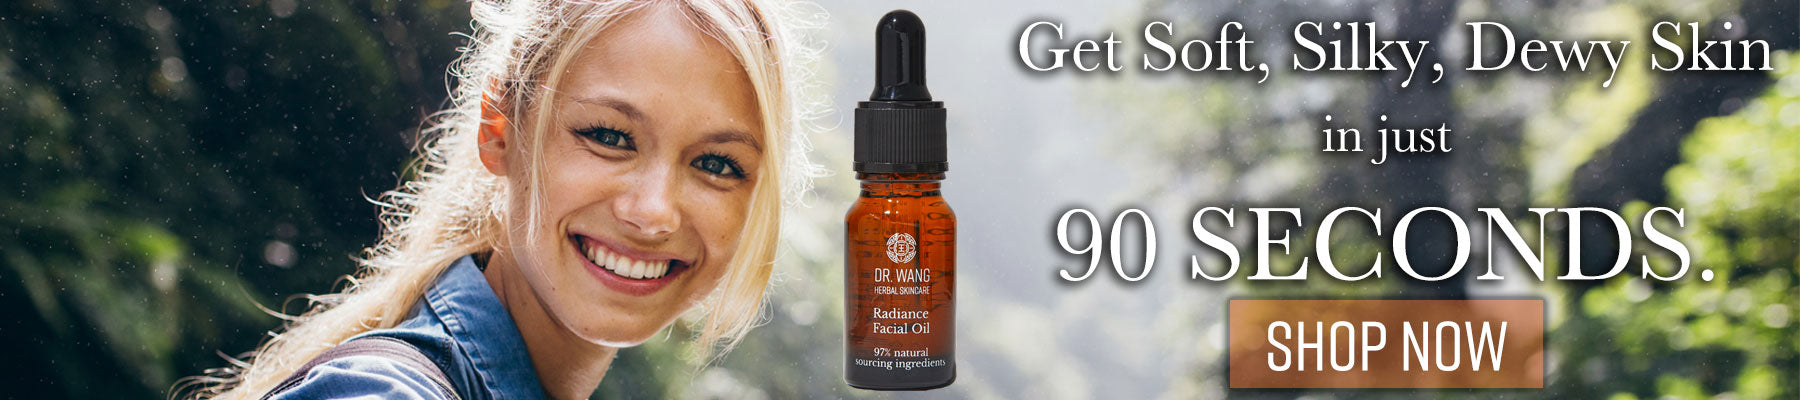 Radiance Facial Oil with Ginseng & Licorice Root